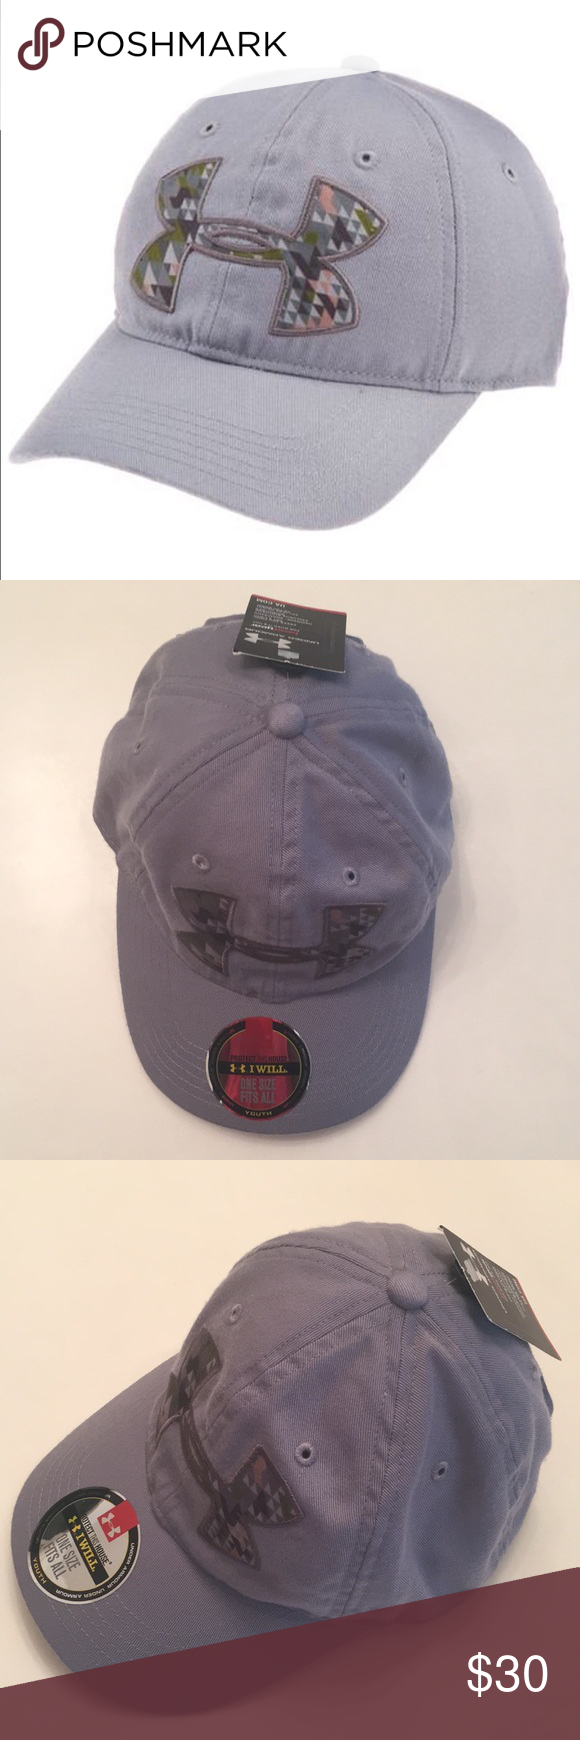 a6303a79c7f Under Armour UA Youth Cap The Under Armour Boys Big Logo Adjustable Cap  features HeatGear® sweatband to keep you cool and dry. Stretch fit delivers  ...